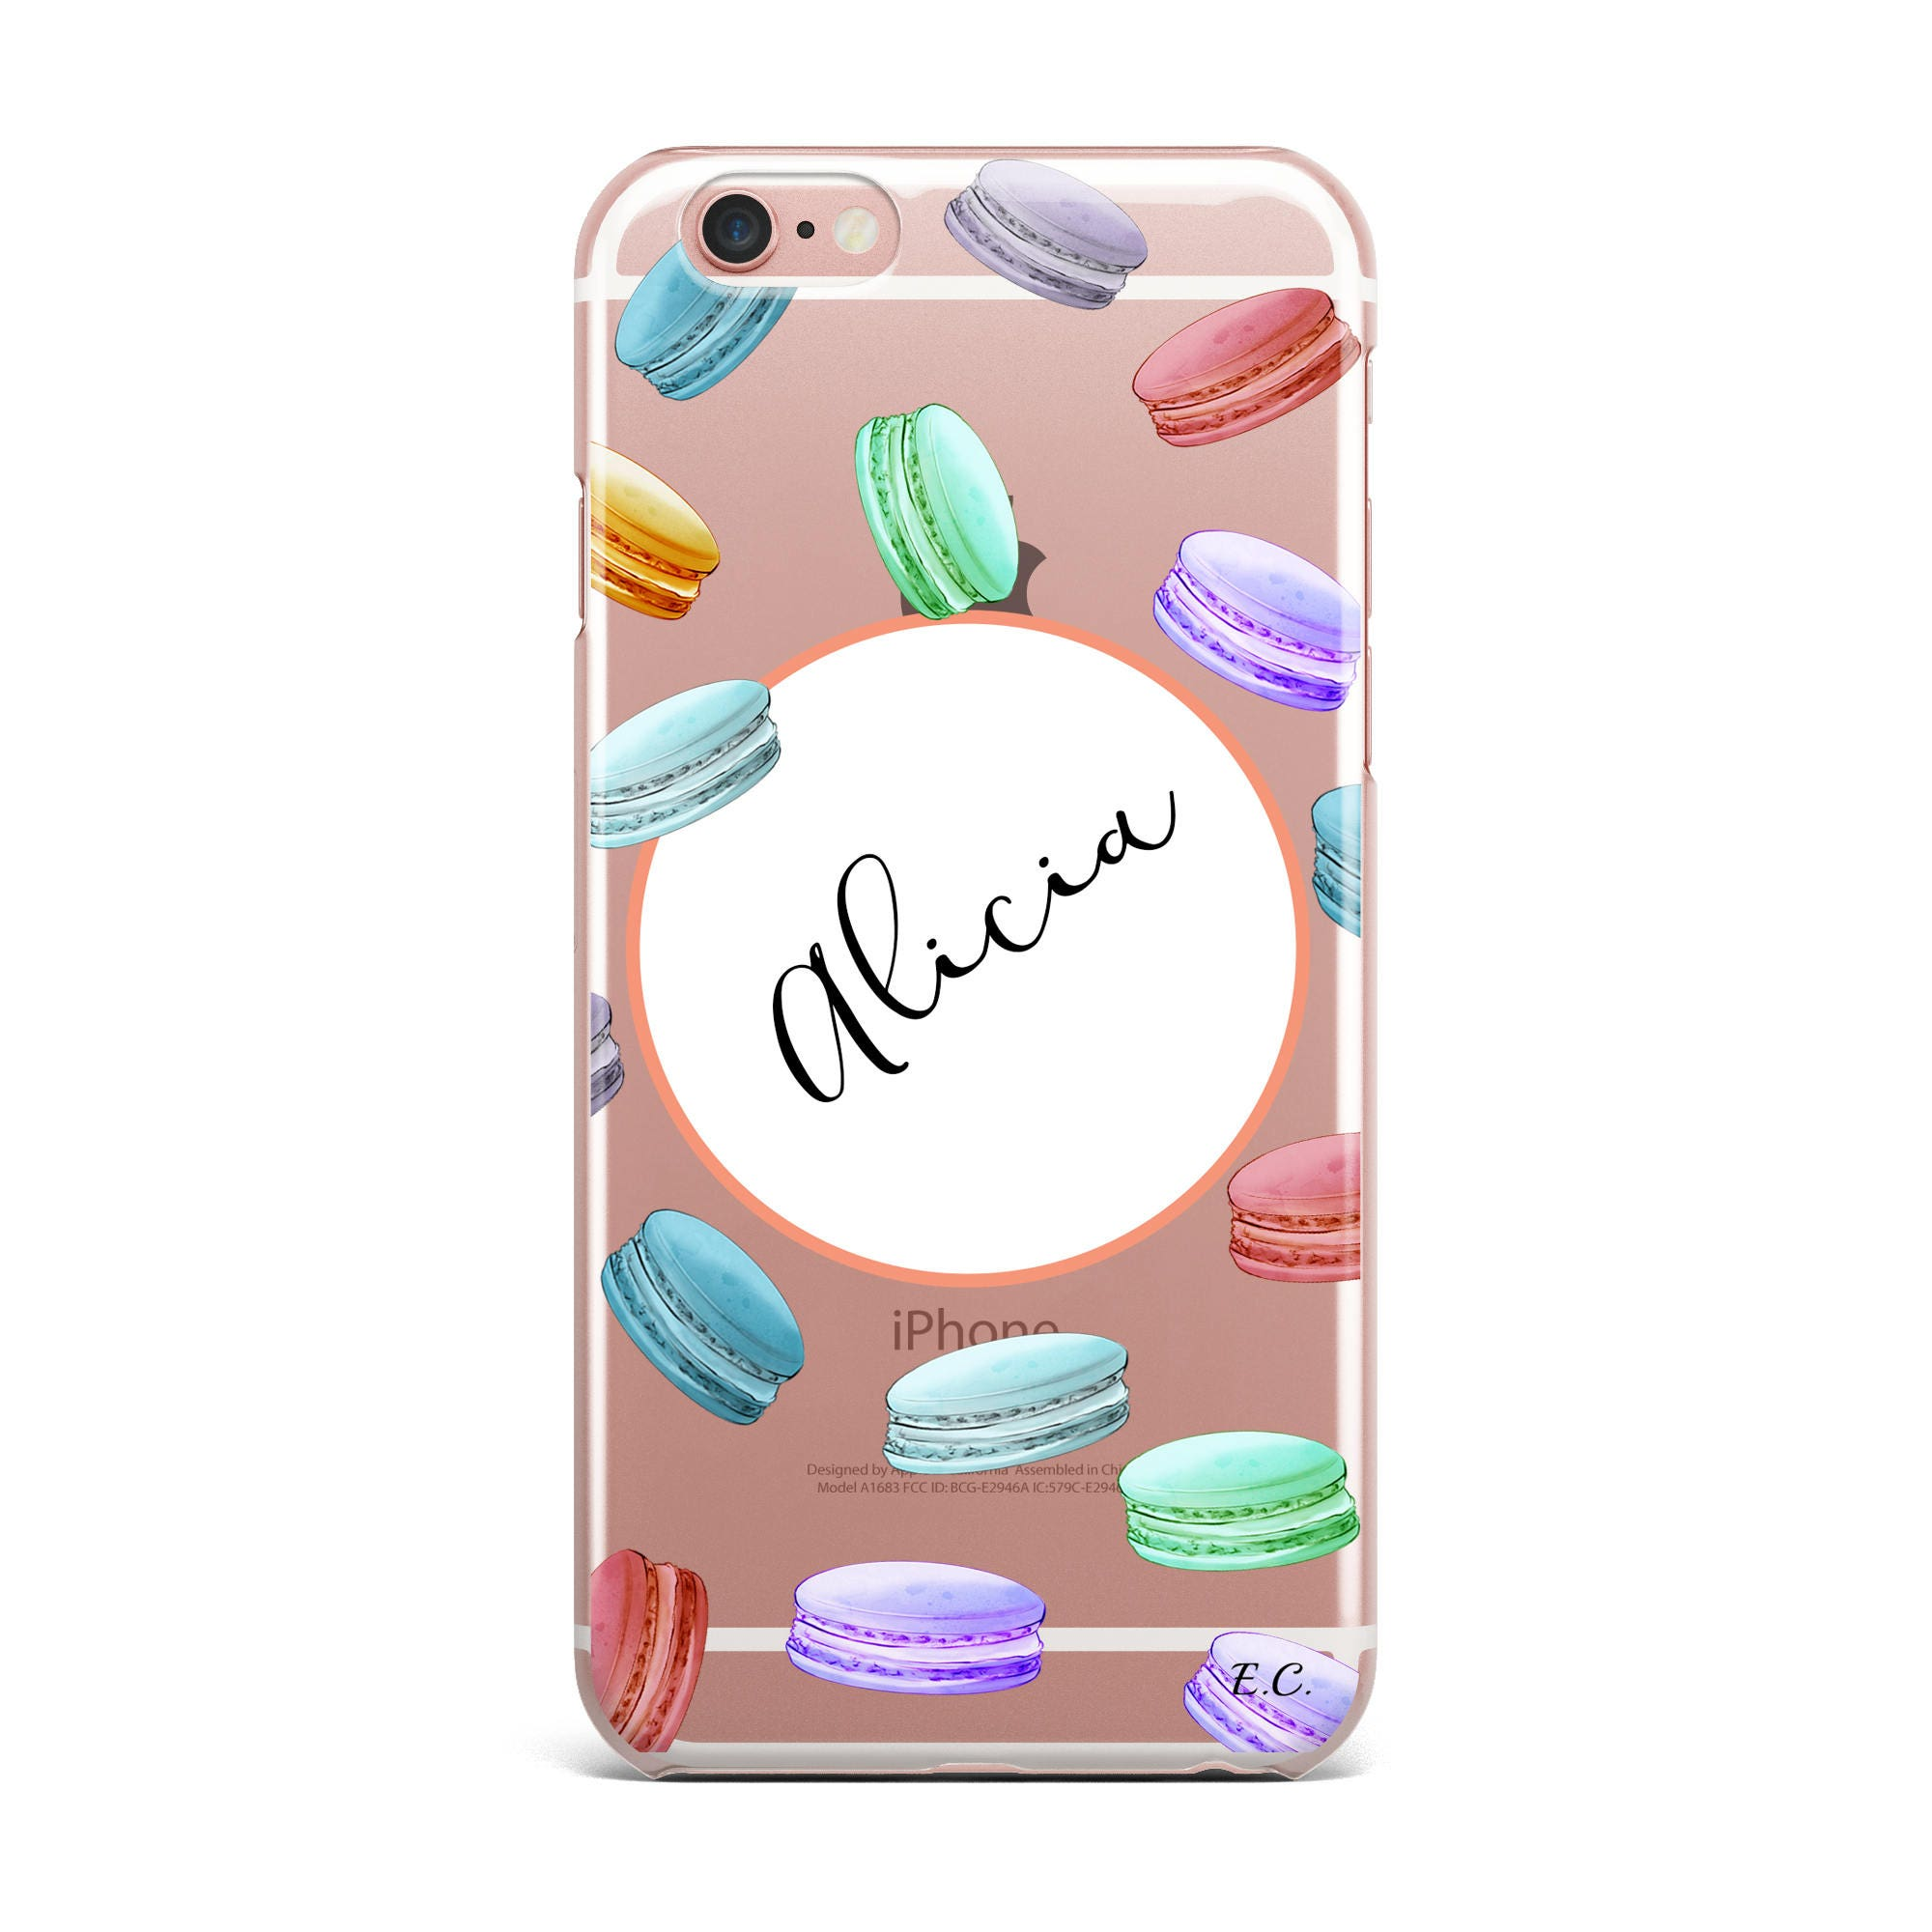 custom iphone case customize iphone case personalize iphone case